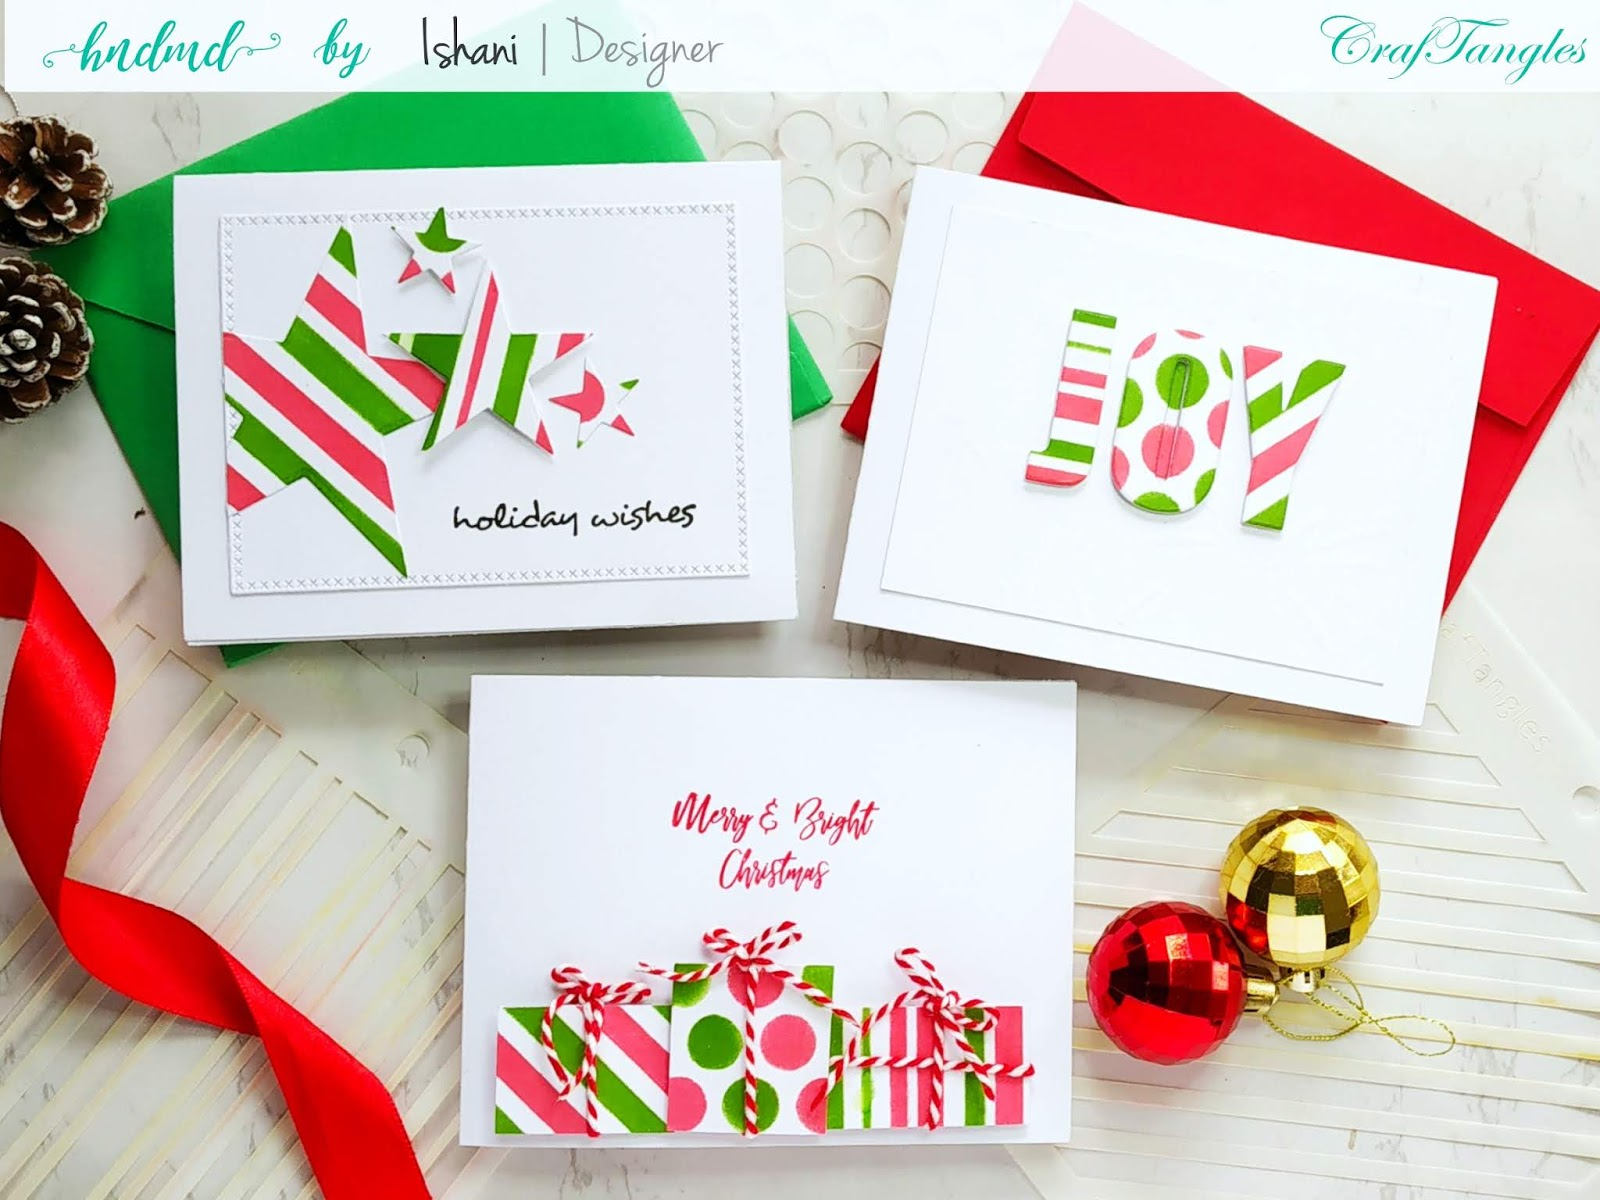 Patterned paper with stencils - Video tutorial 5